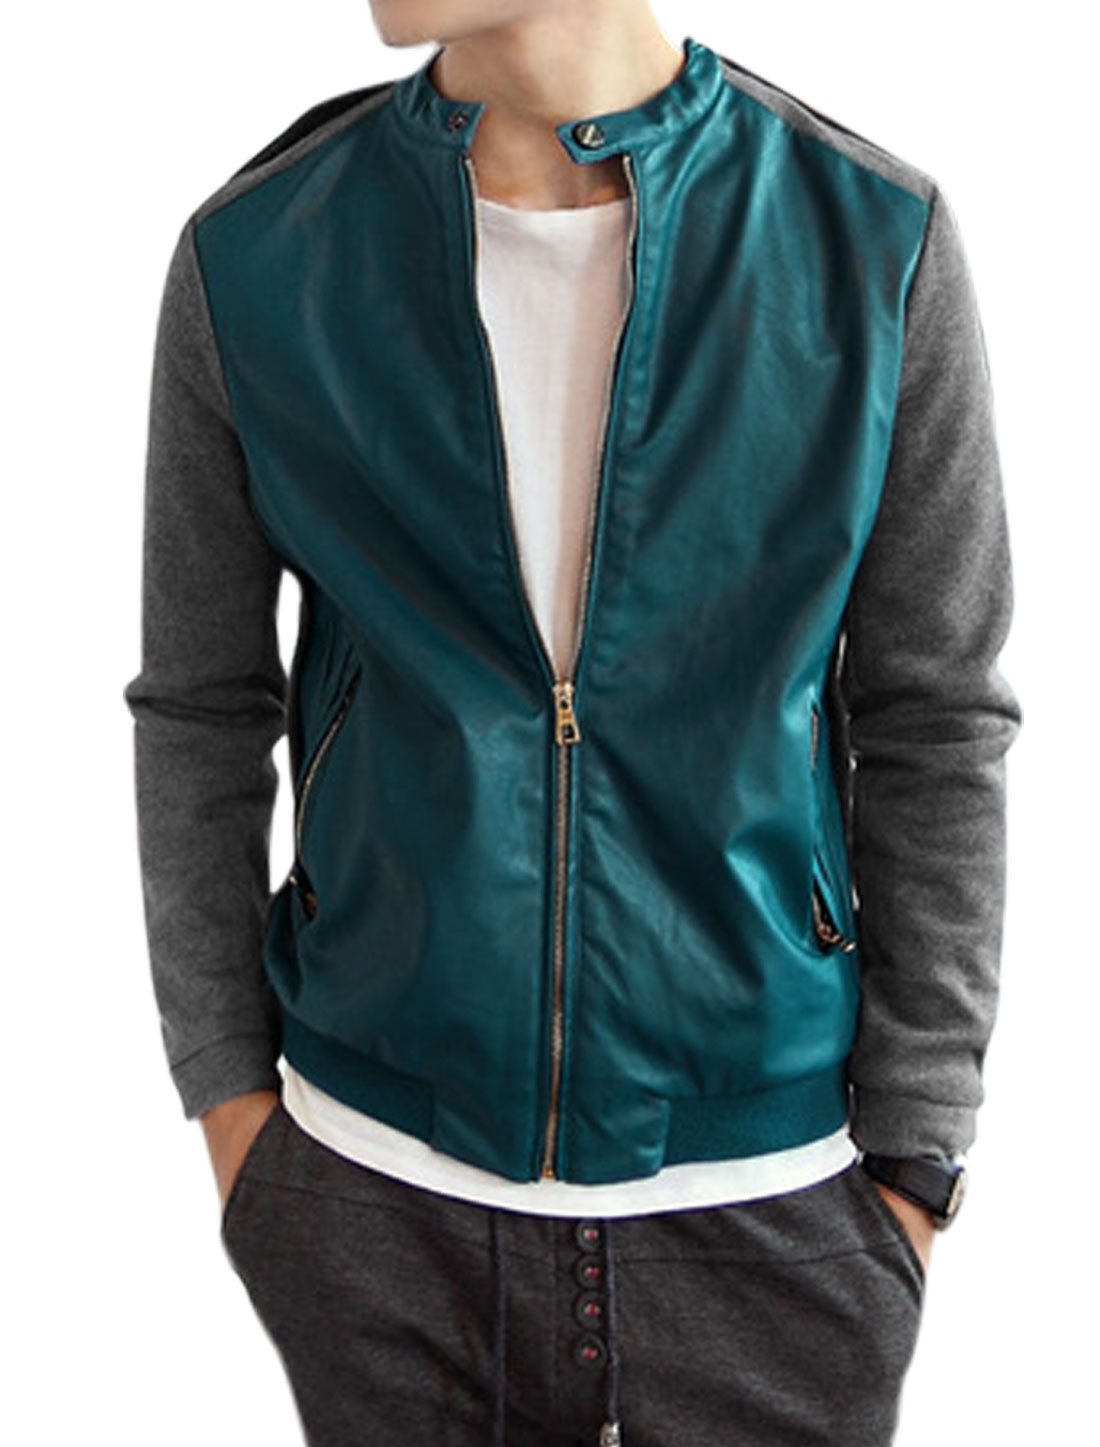 Men Imitation Leather Panel Contrast Color Jacket Turquoise Gray M